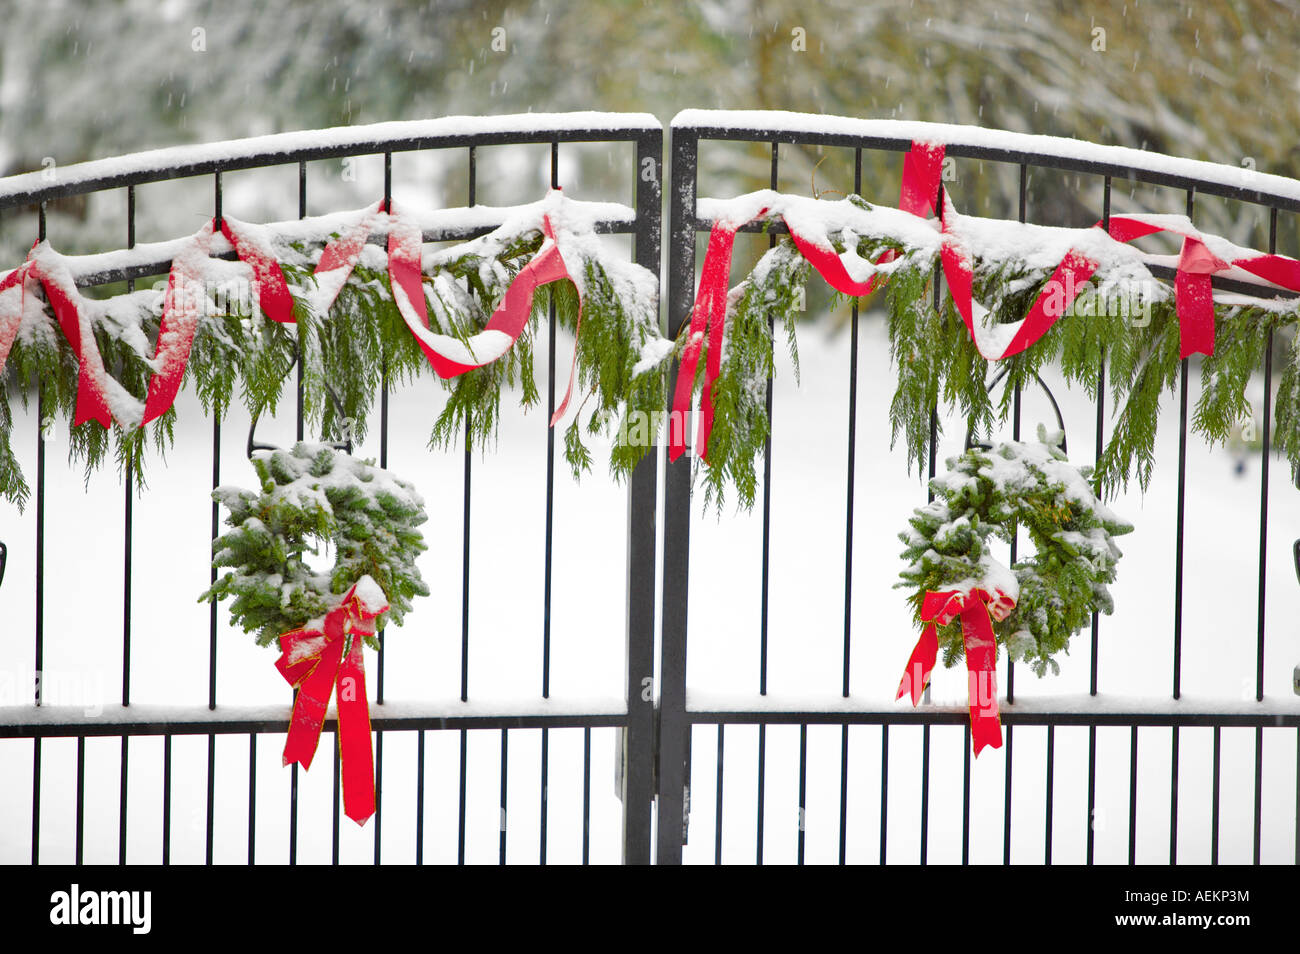 Gate With Christmas Wreaths And Decorations Stock Photo